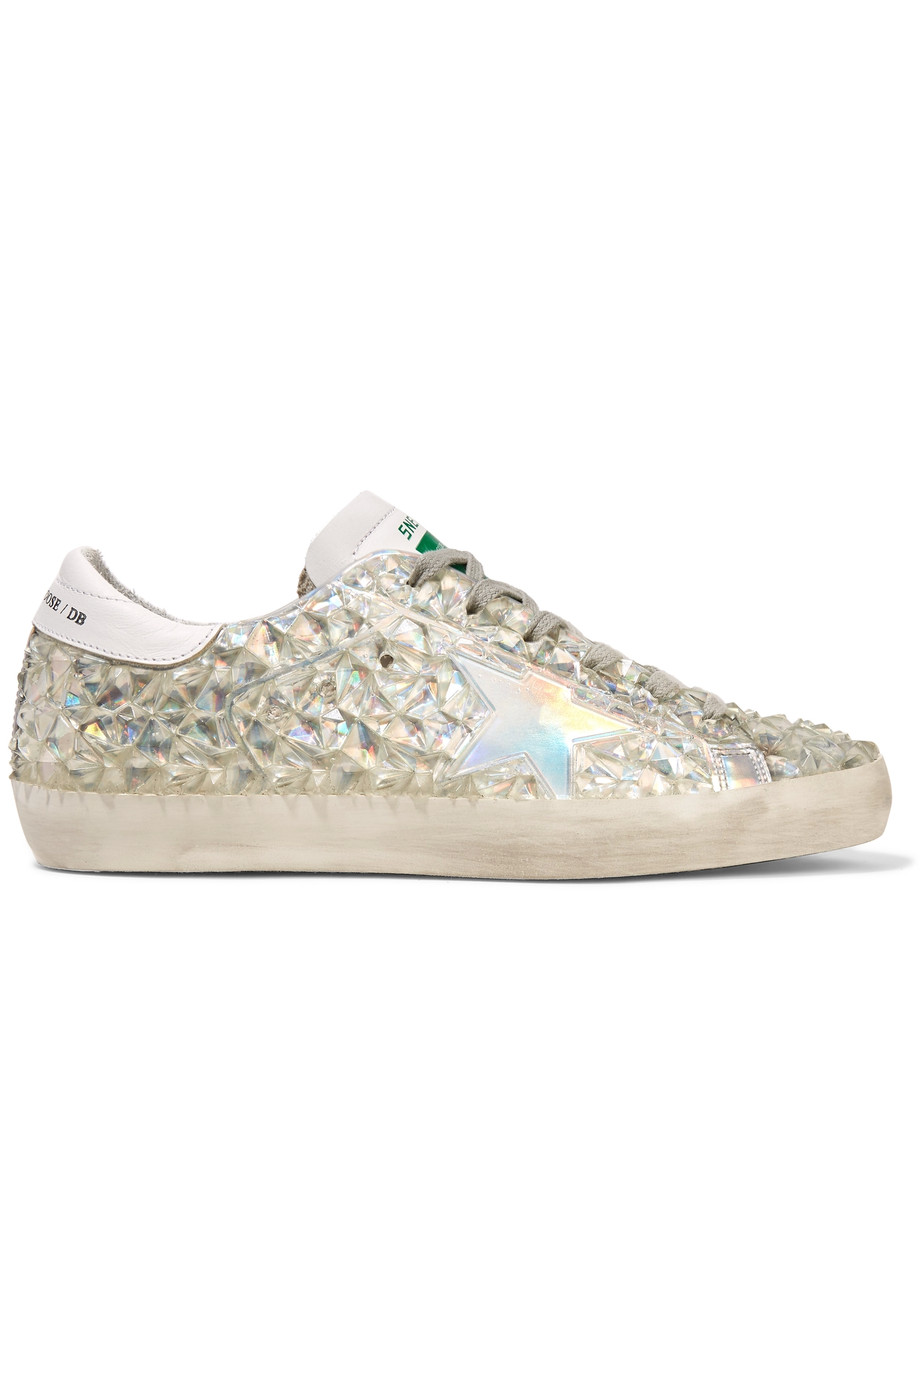 Golden Goose Leathers Leather-trimmed crystal-embellished rubber sneakers